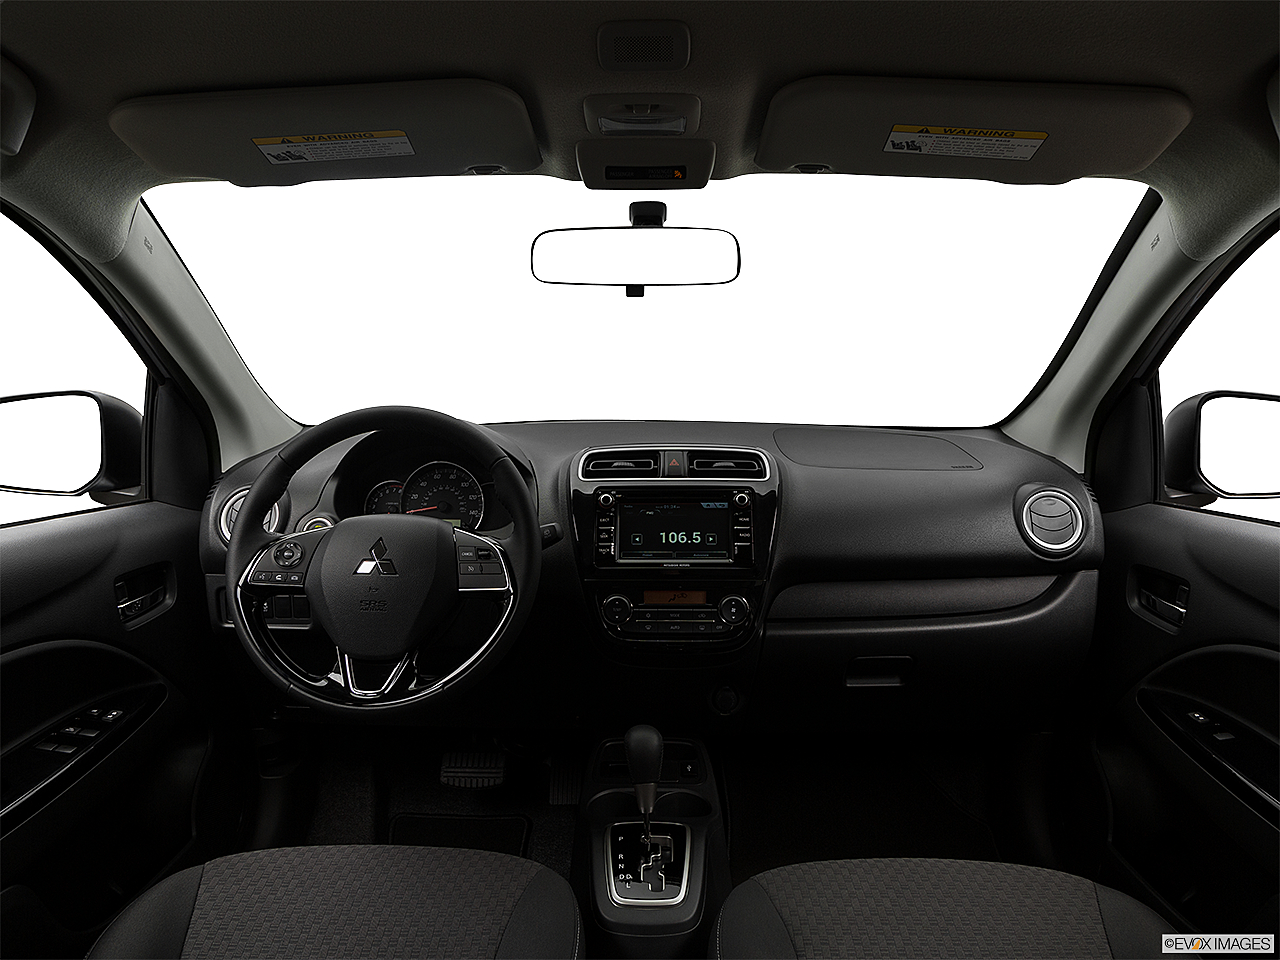 2018 Mitsubishi Mirage SE, centered wide dash shot